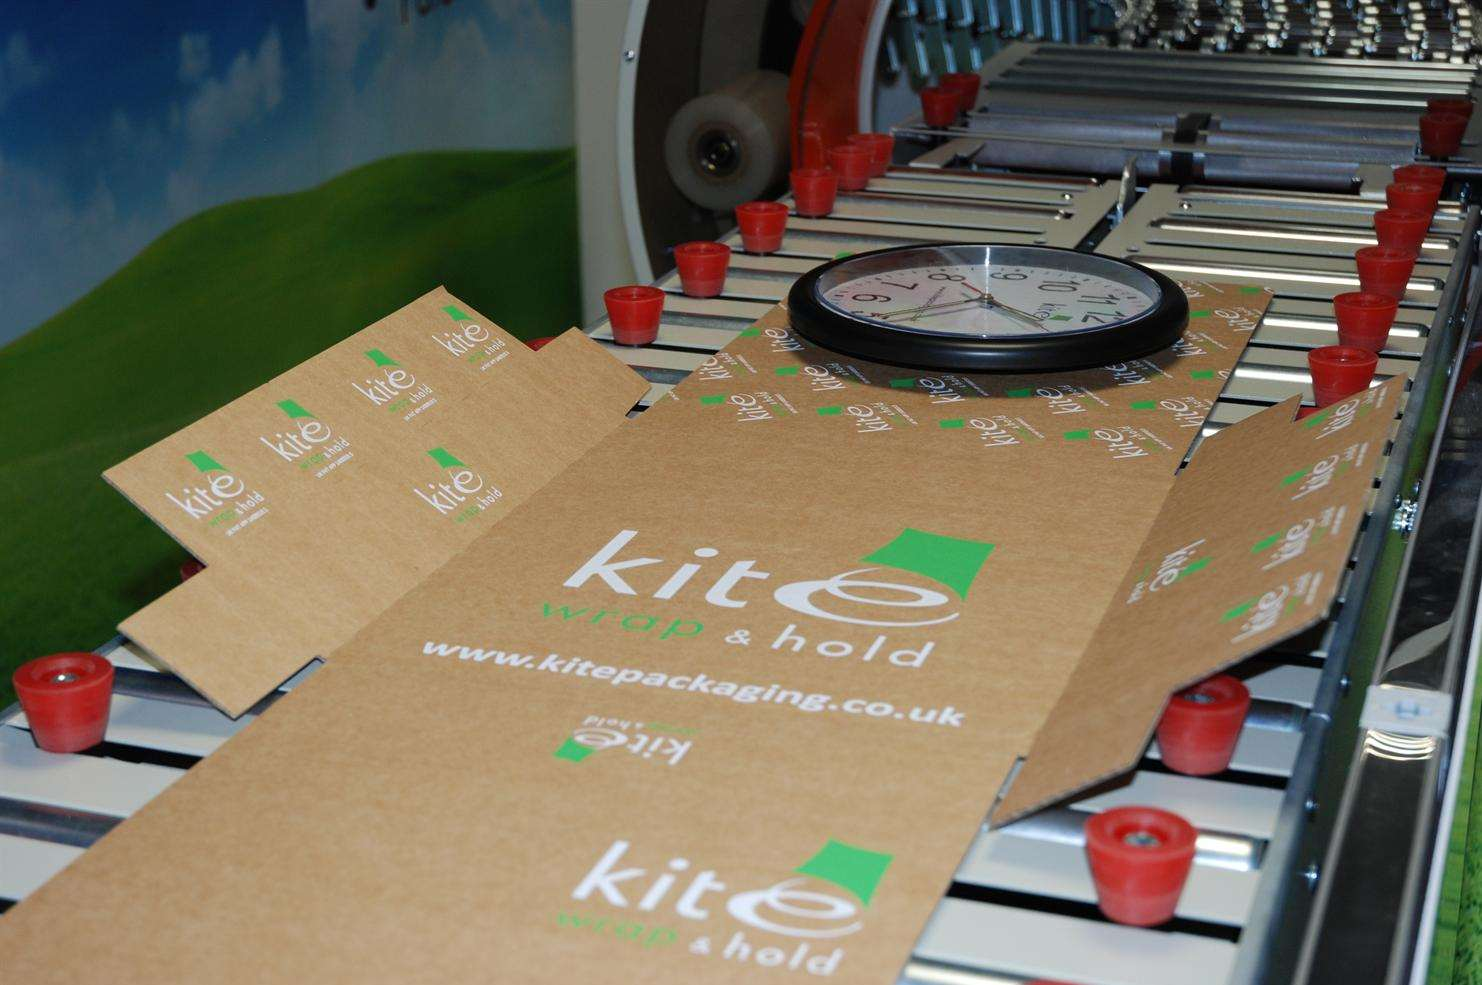 Kite Packaging has opened a new branch in Maidstone